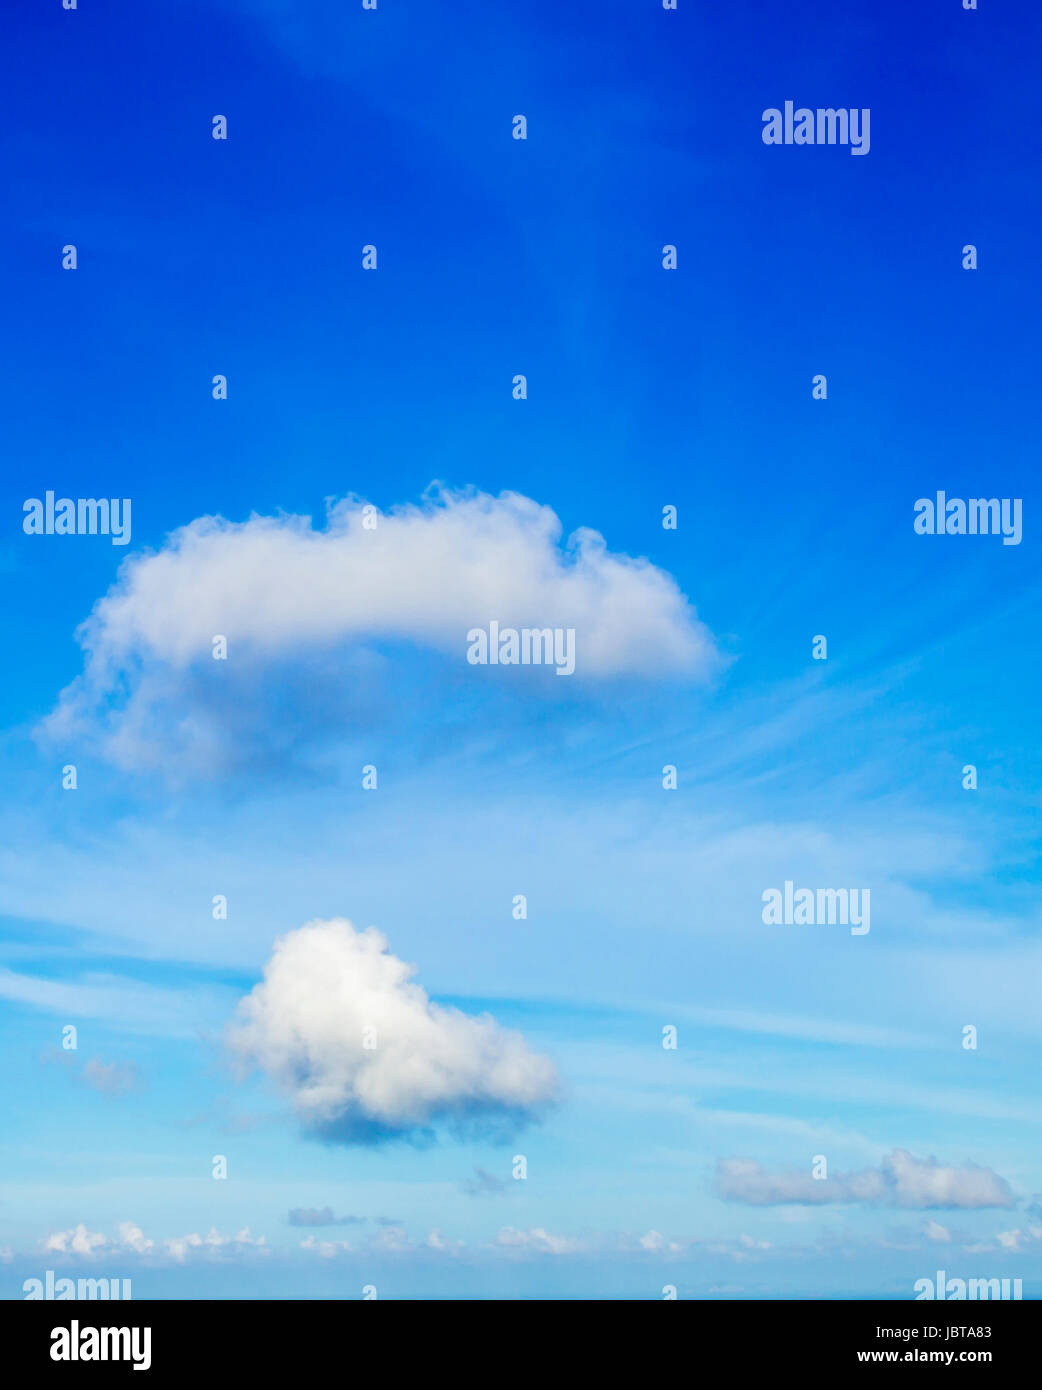 Closeup blue sky and fluffy clouds background - Stock Image